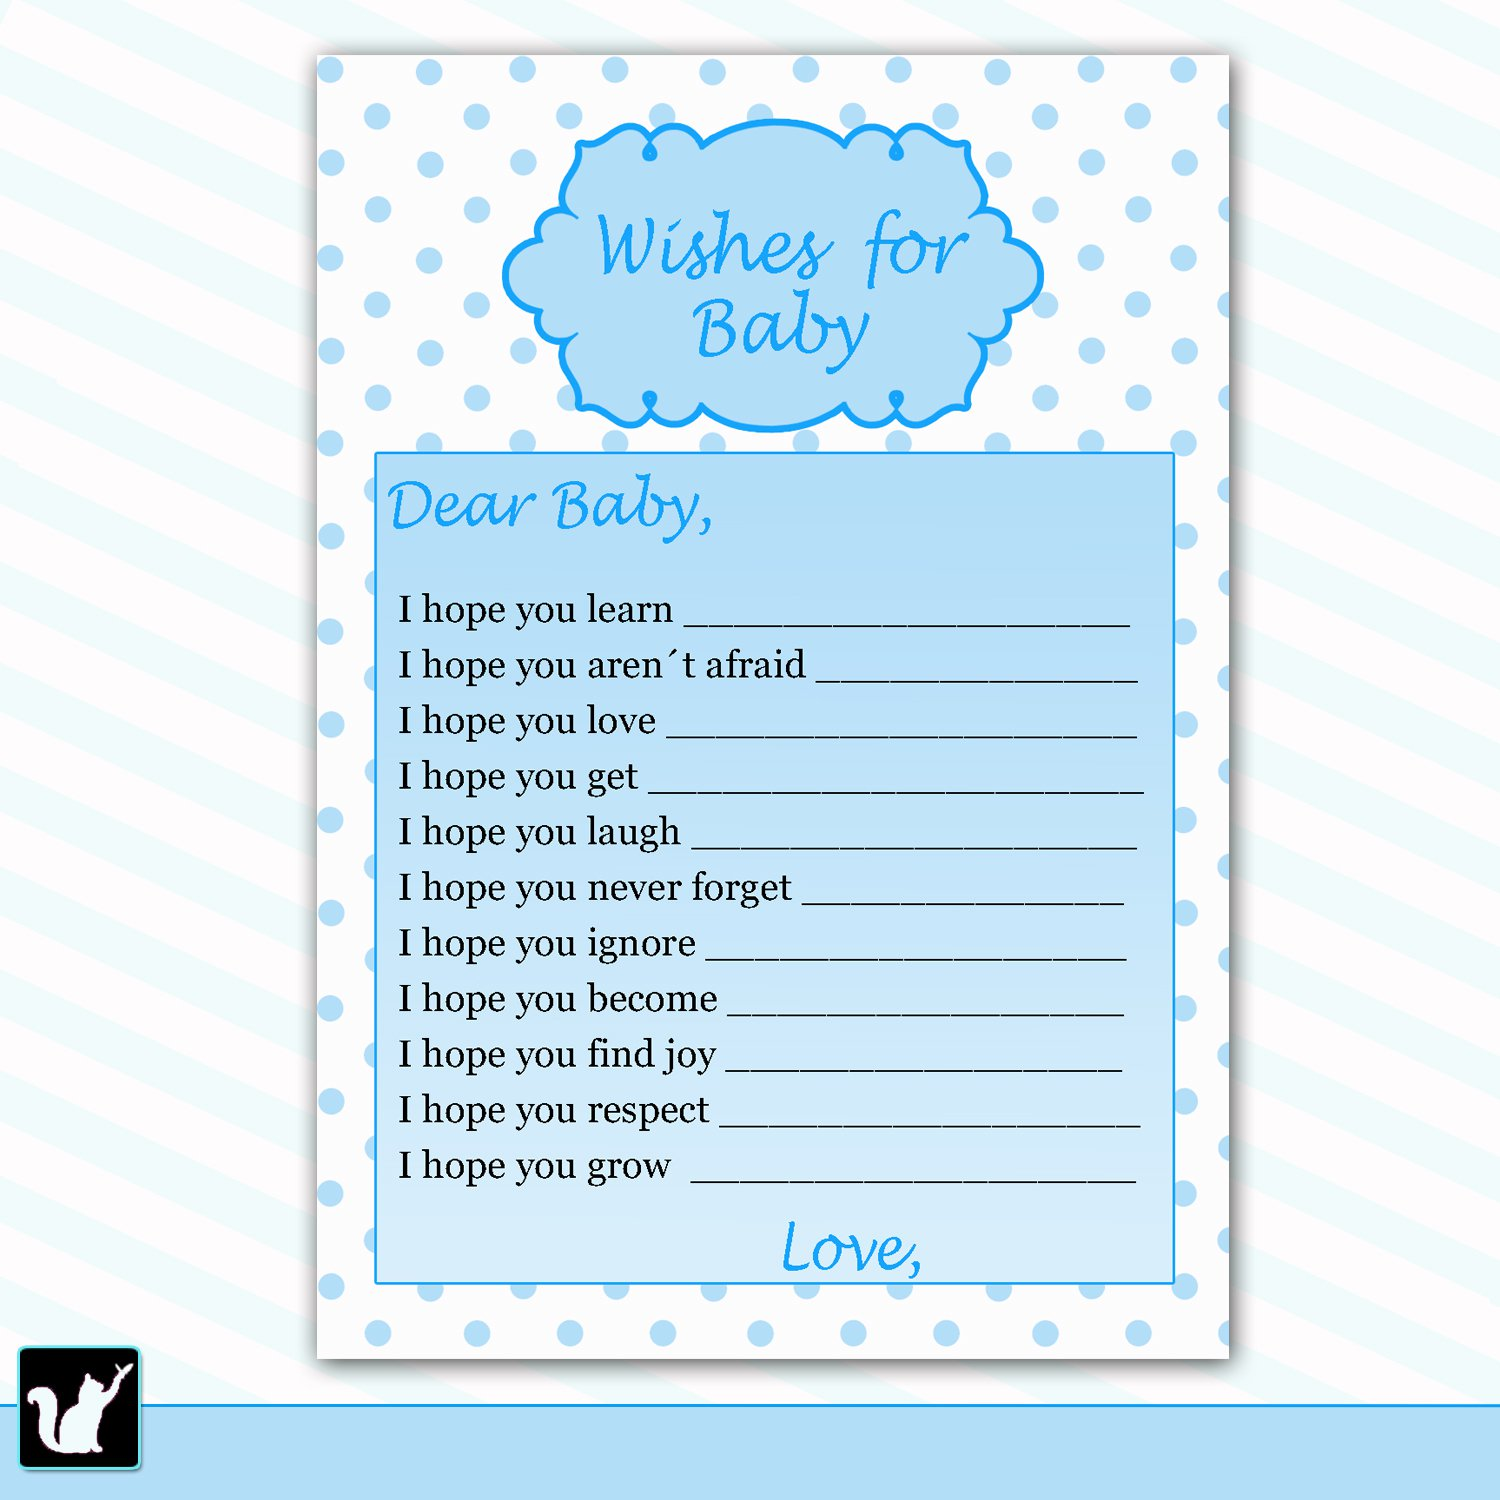 Baby Shower Greeting Card Template Image Cabinets And